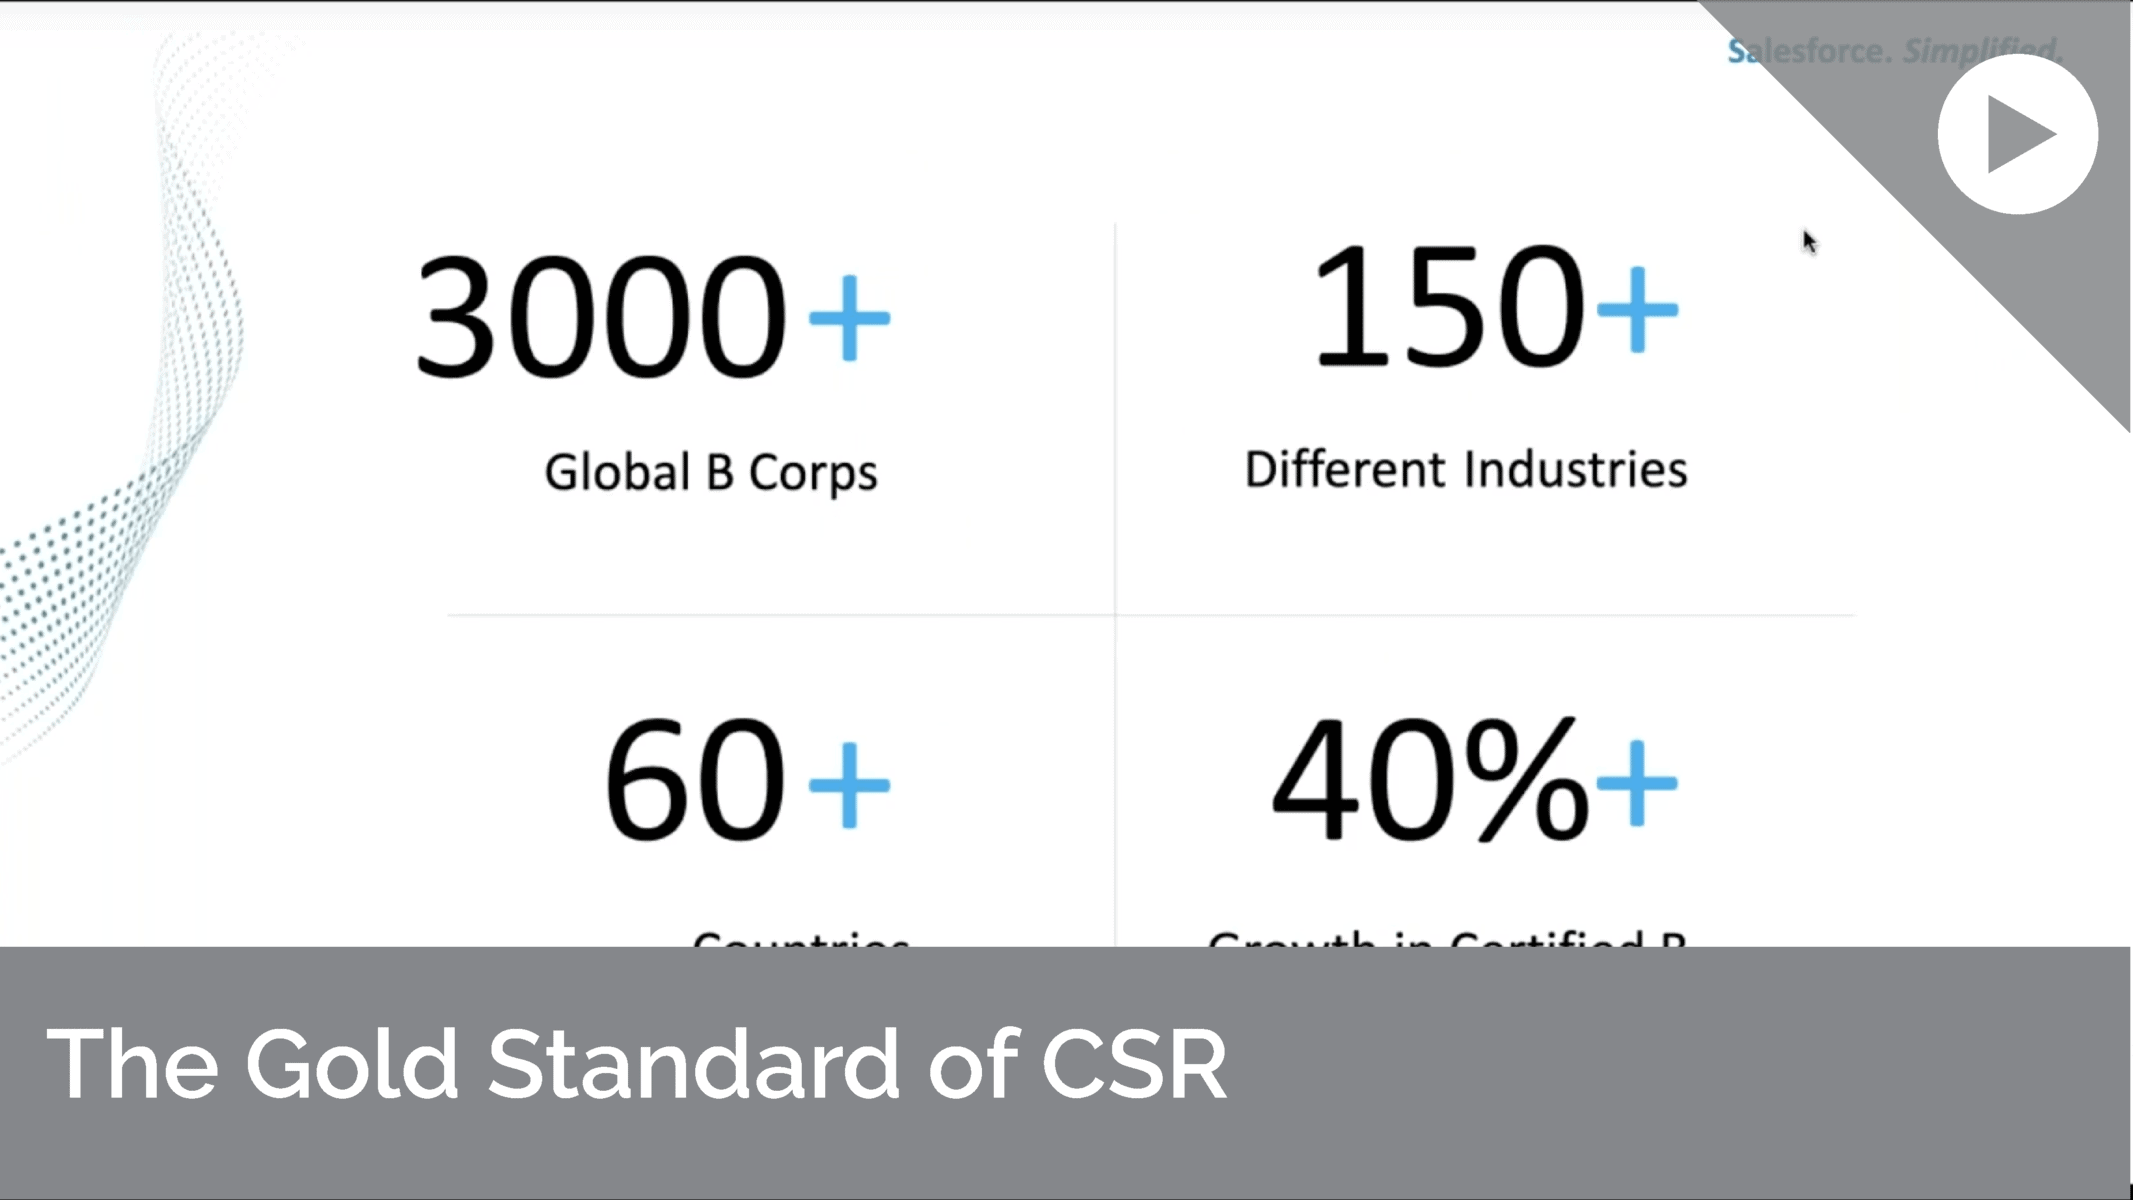 The Gold Standard of CSR